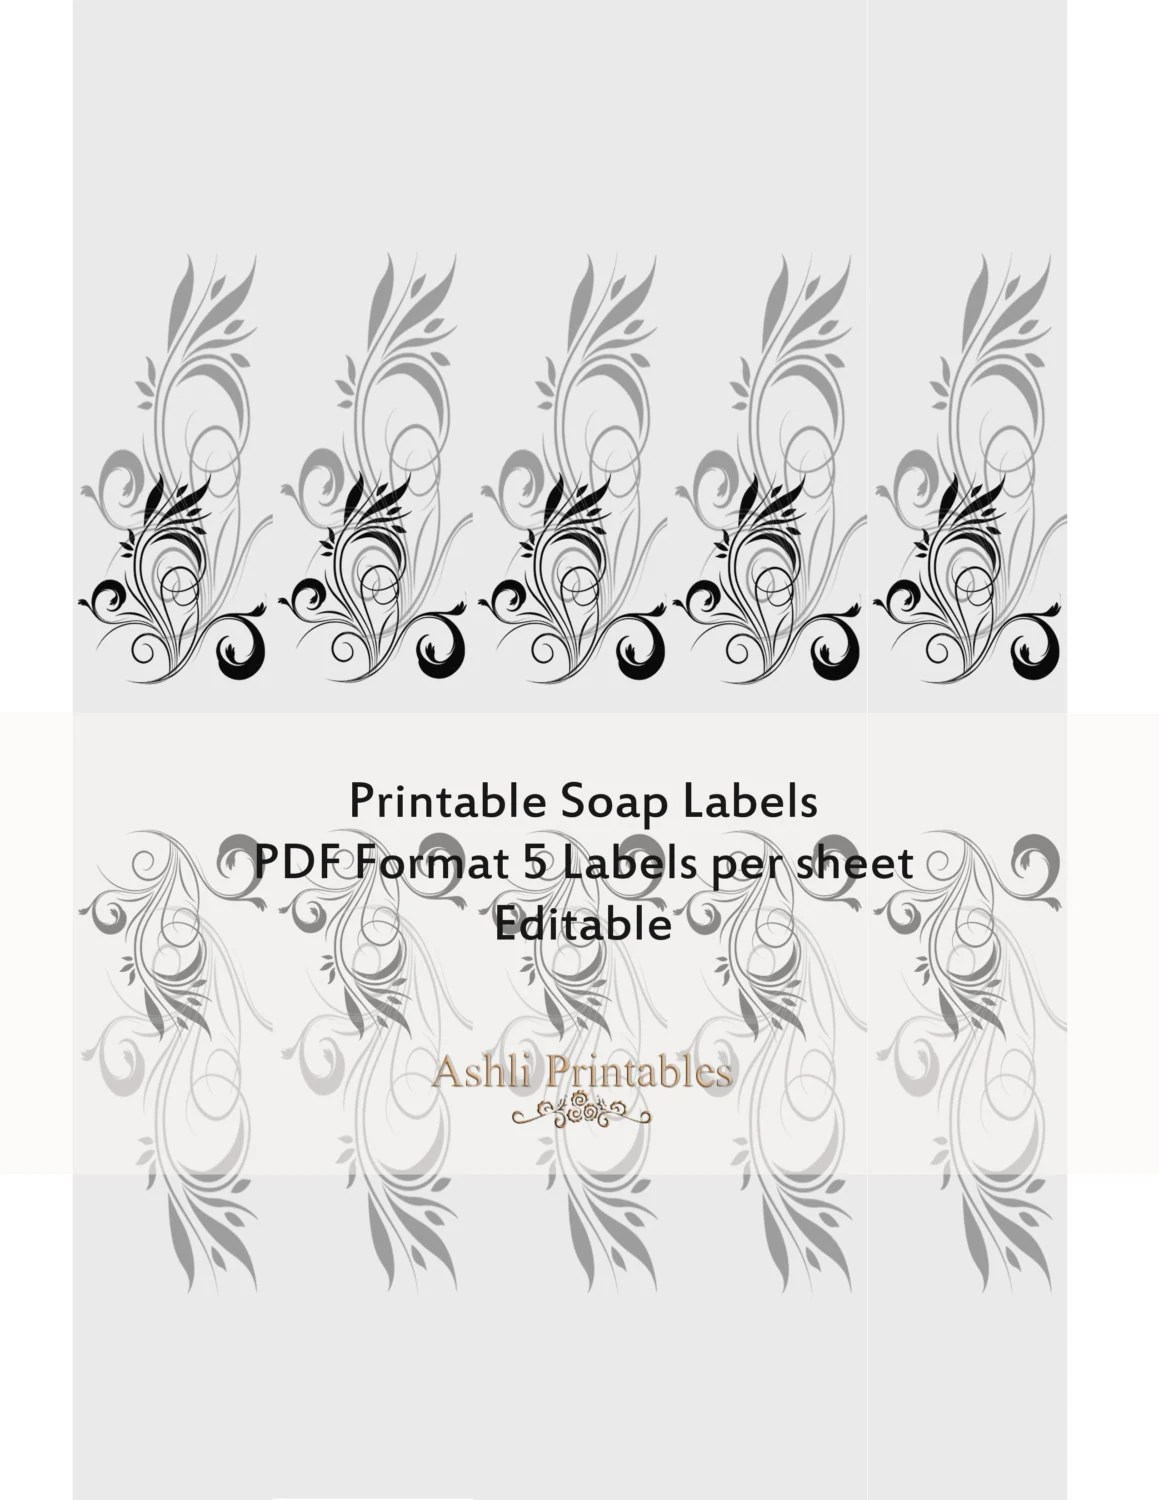 Items similar to Printable Soap Labels Wraps Instant